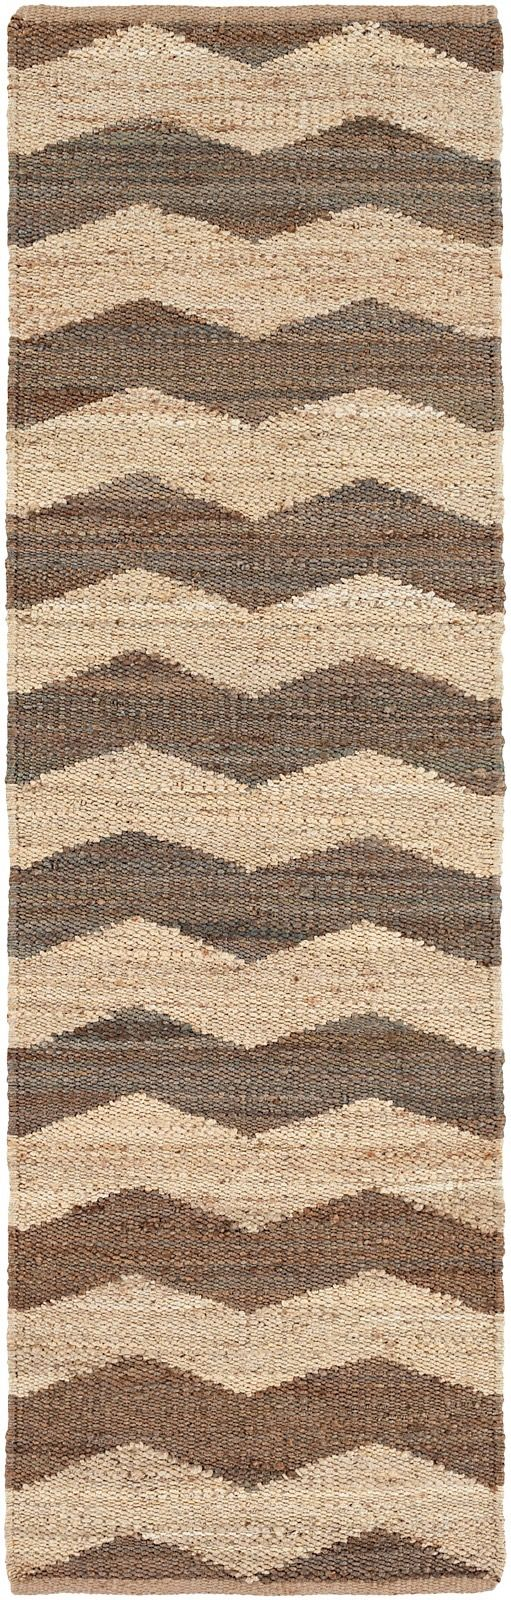 surya wade contemporary area rug collection